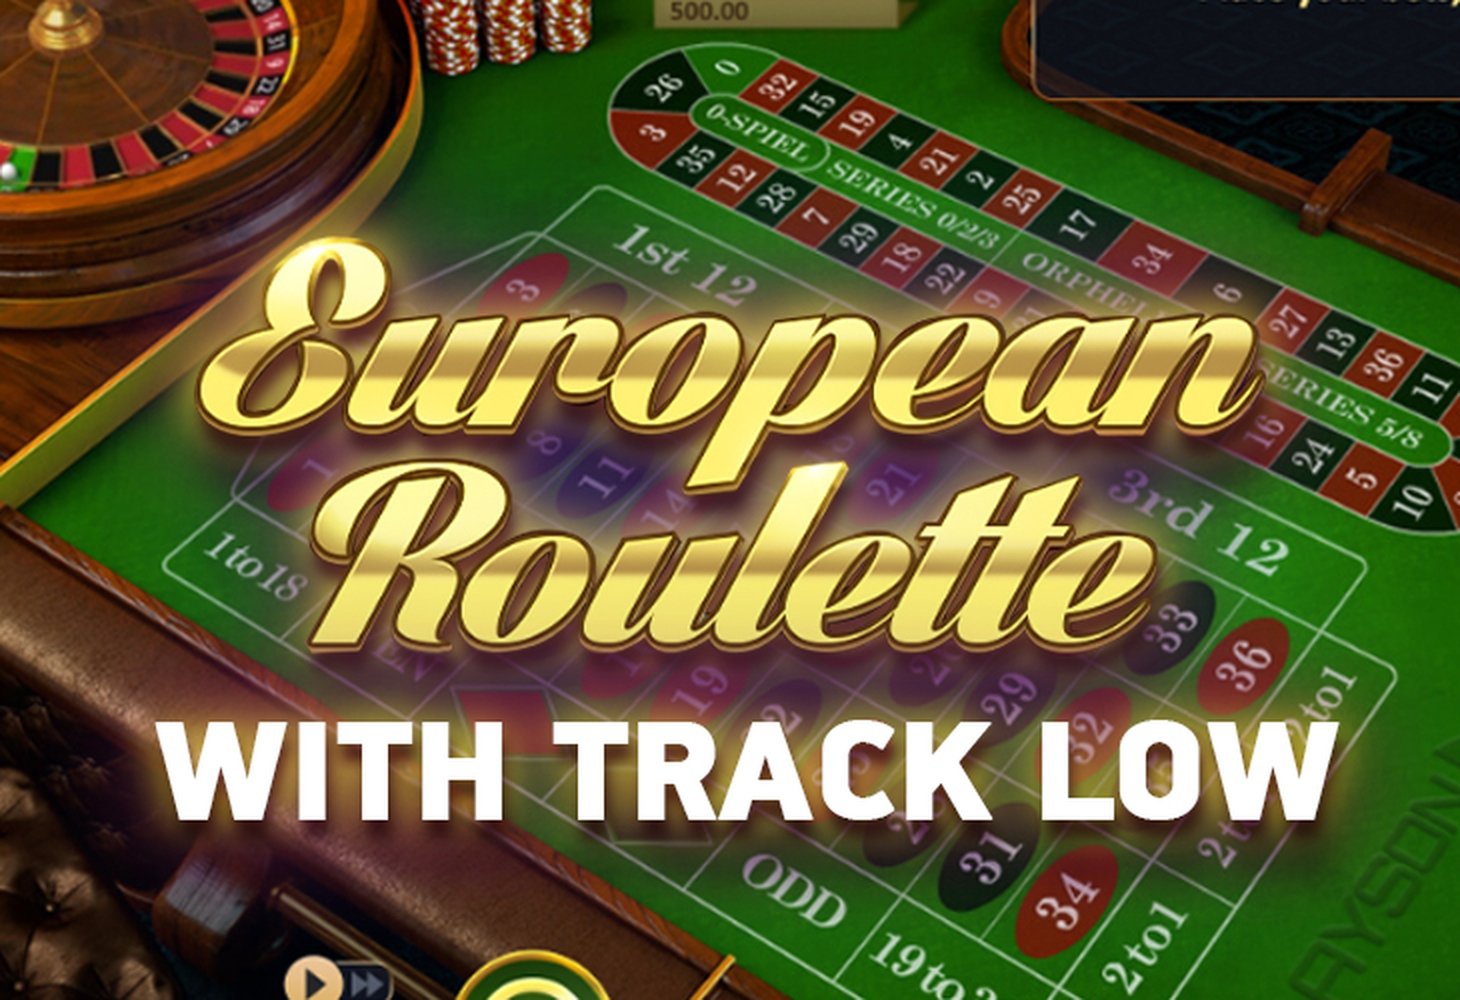 The Roulette with Track low Online Slot Demo Game by Playson